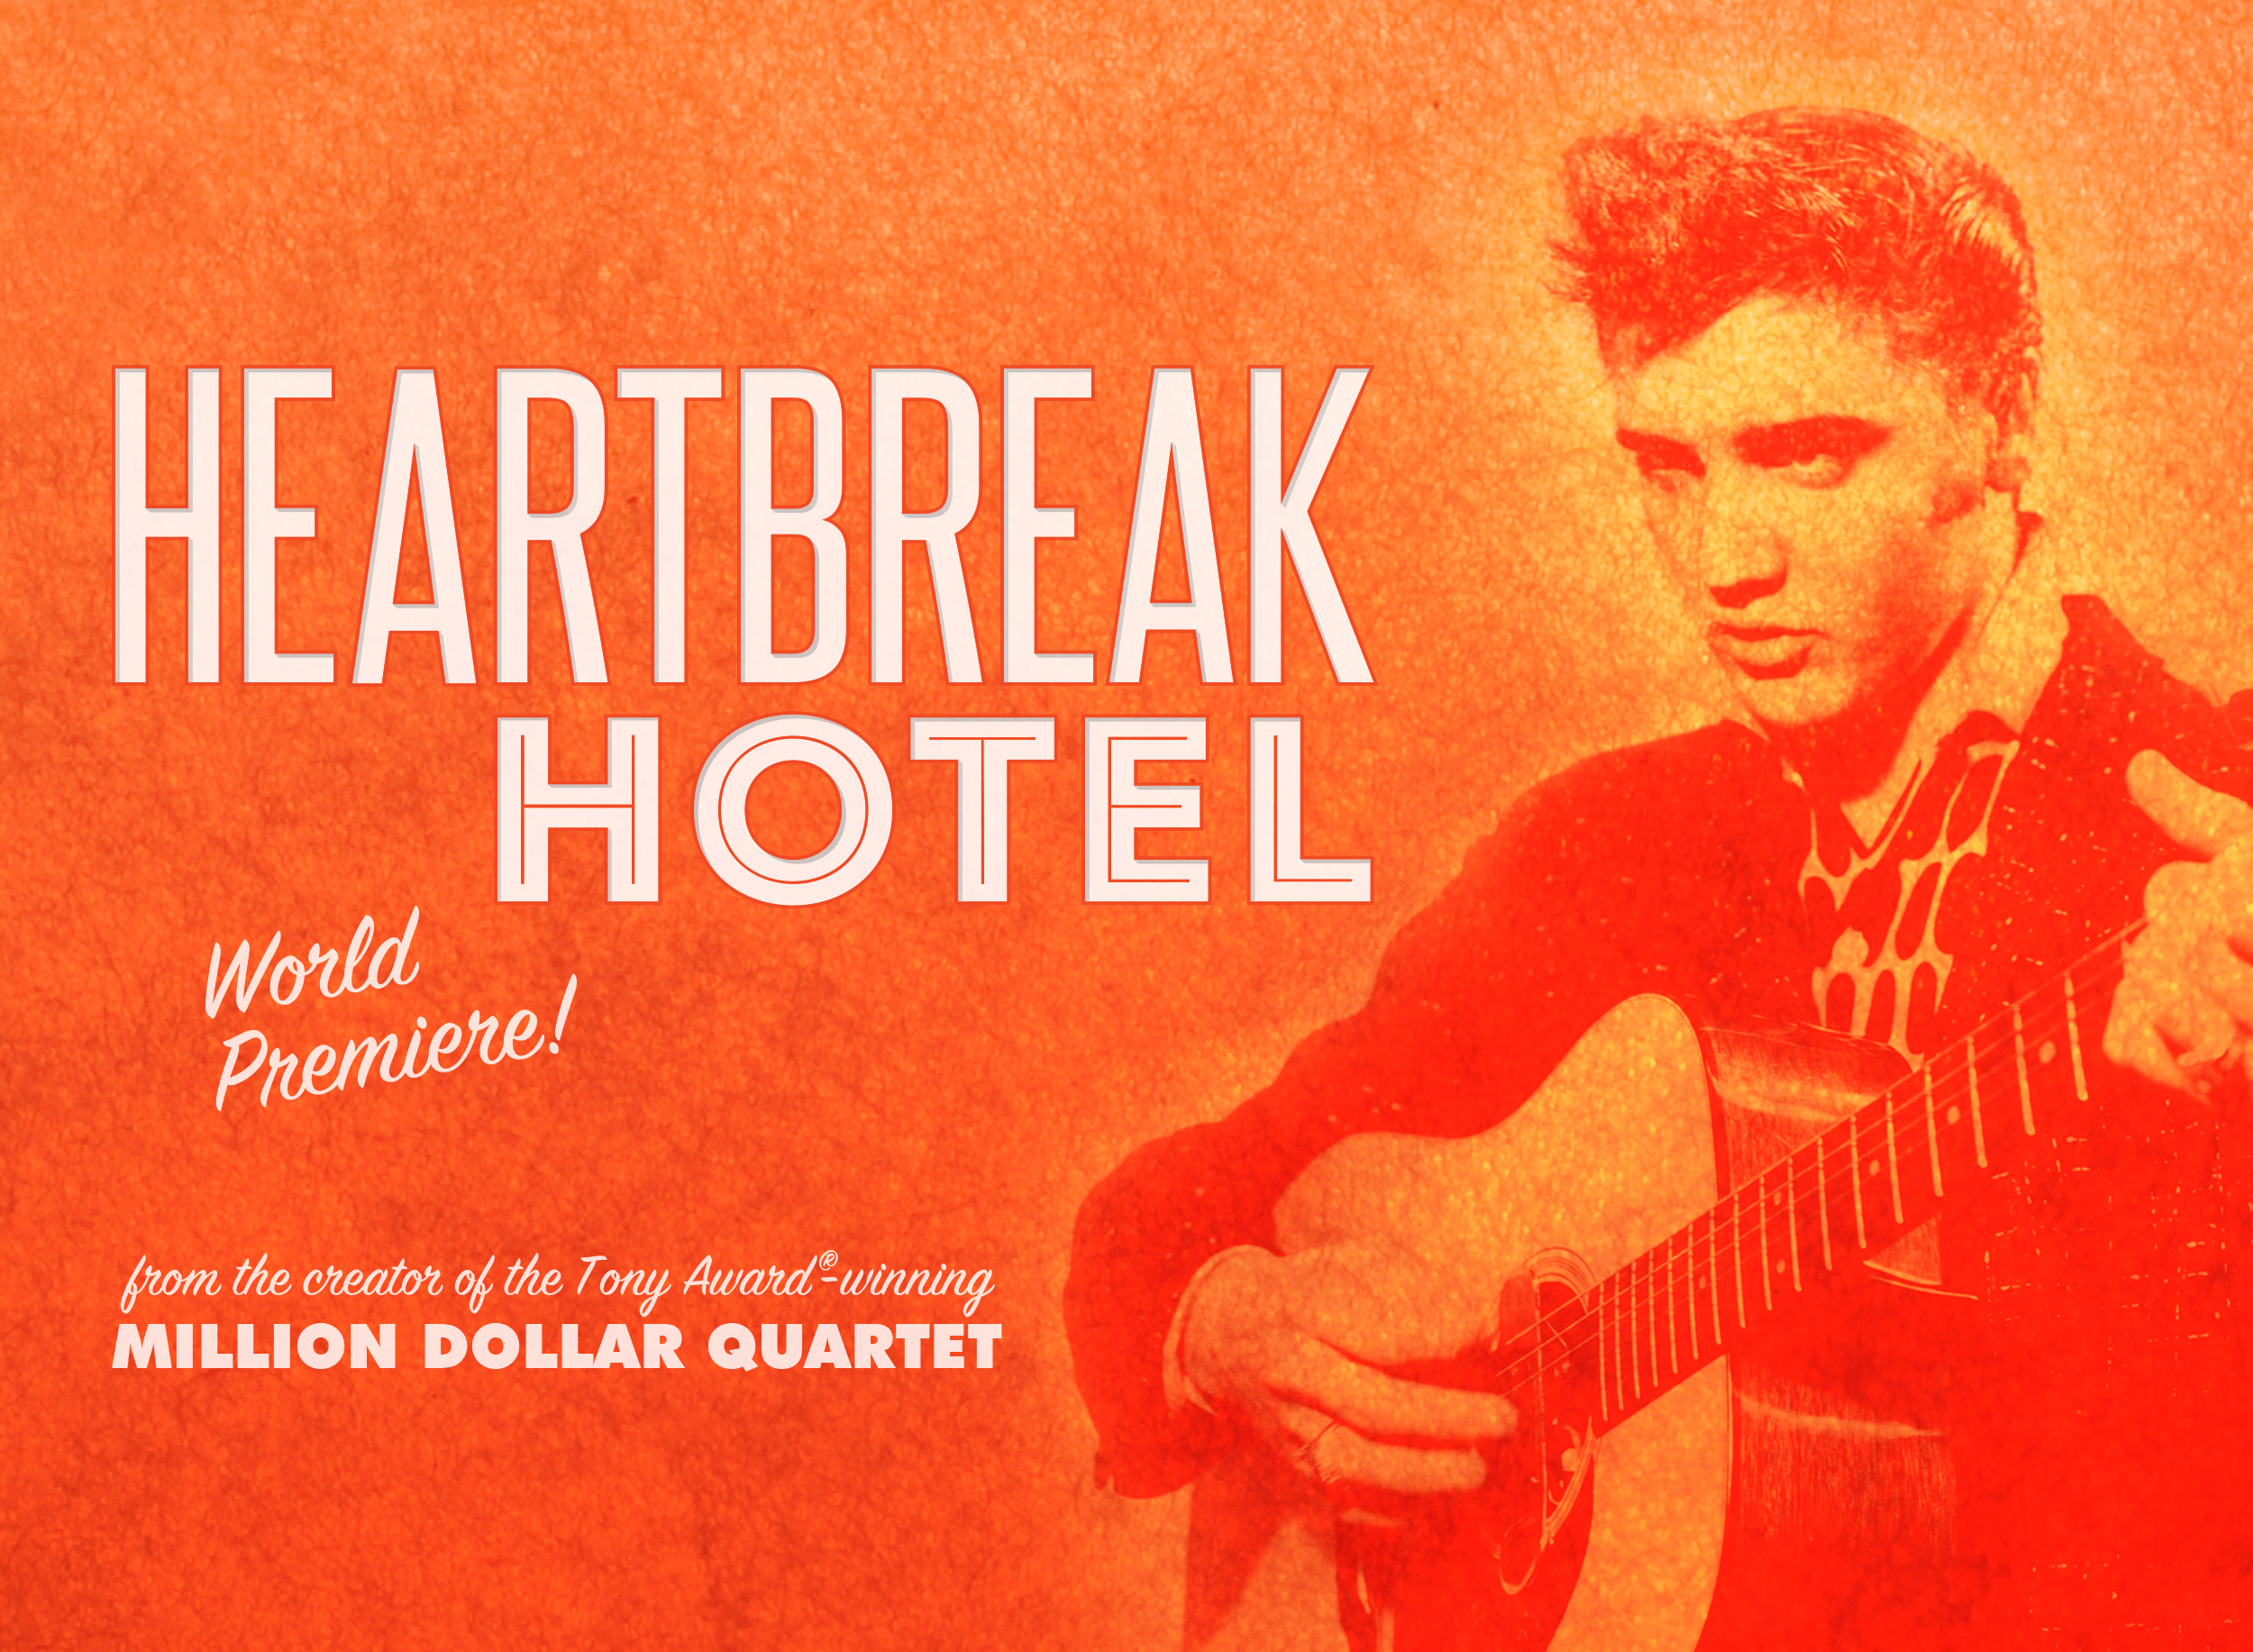 2017_heartbreak-hotel_header_01.jpg